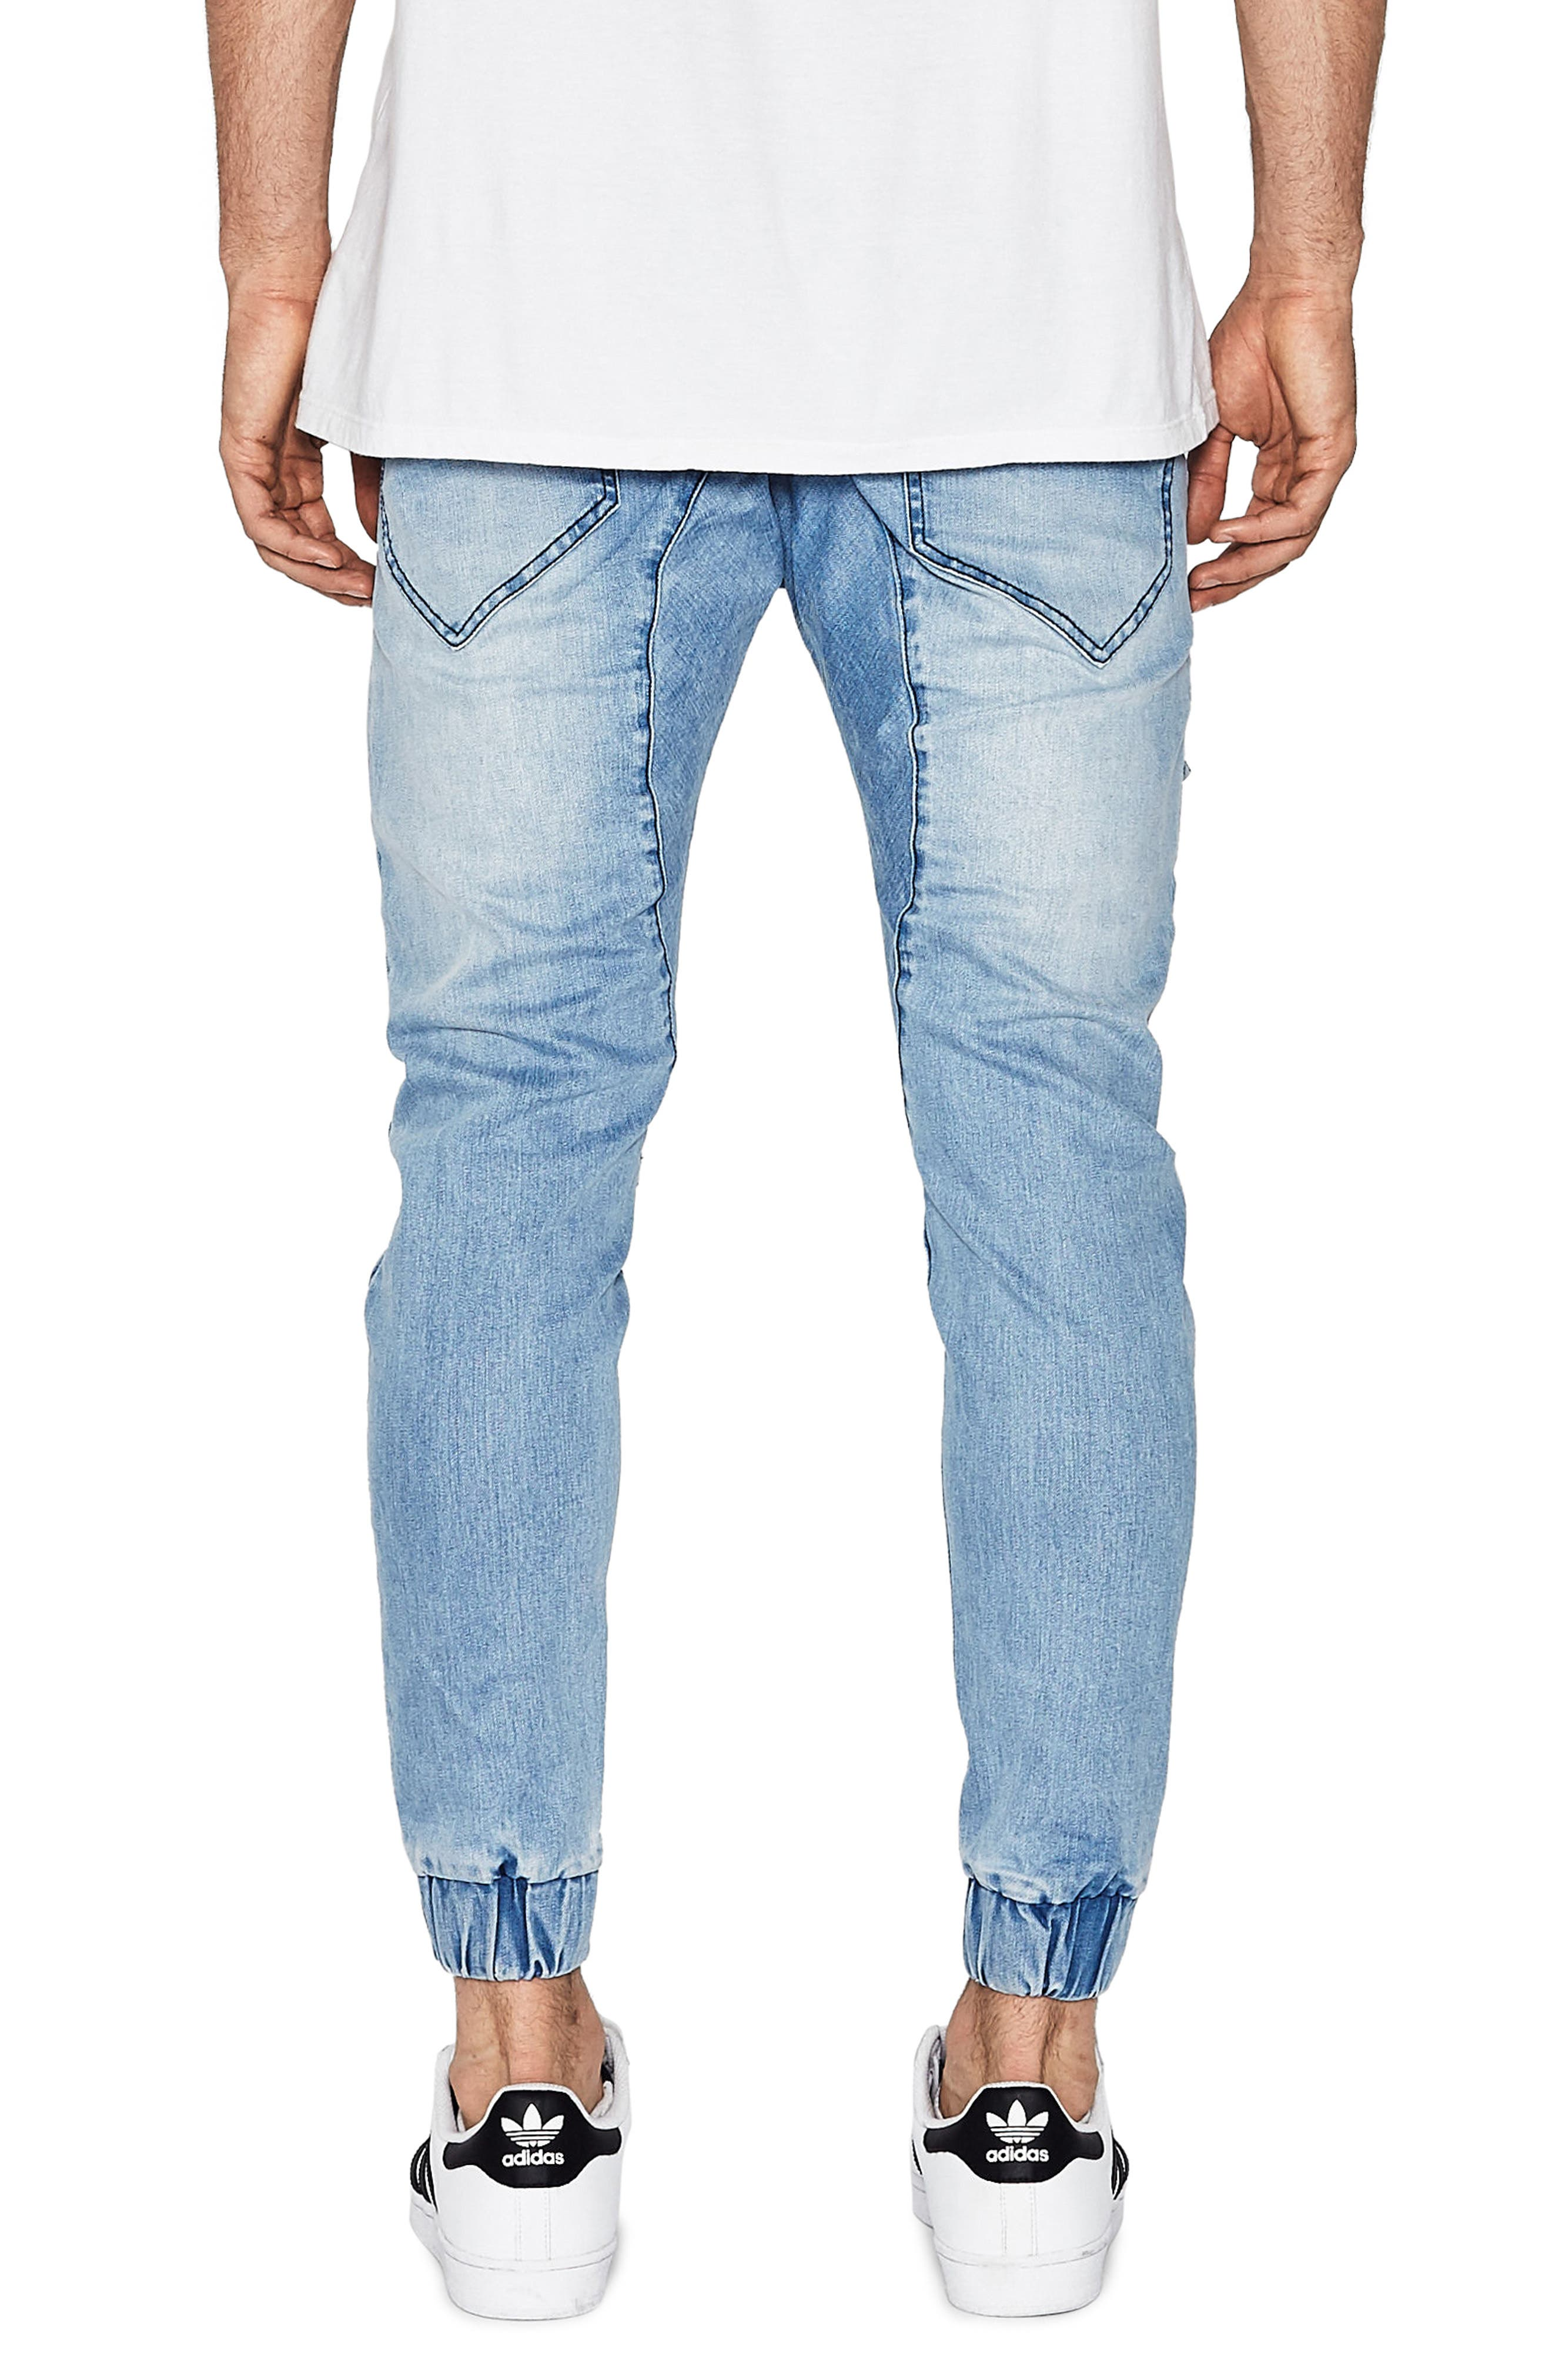 Flight Skinny Denim Jogger Pants,                             Alternate thumbnail 14, color,